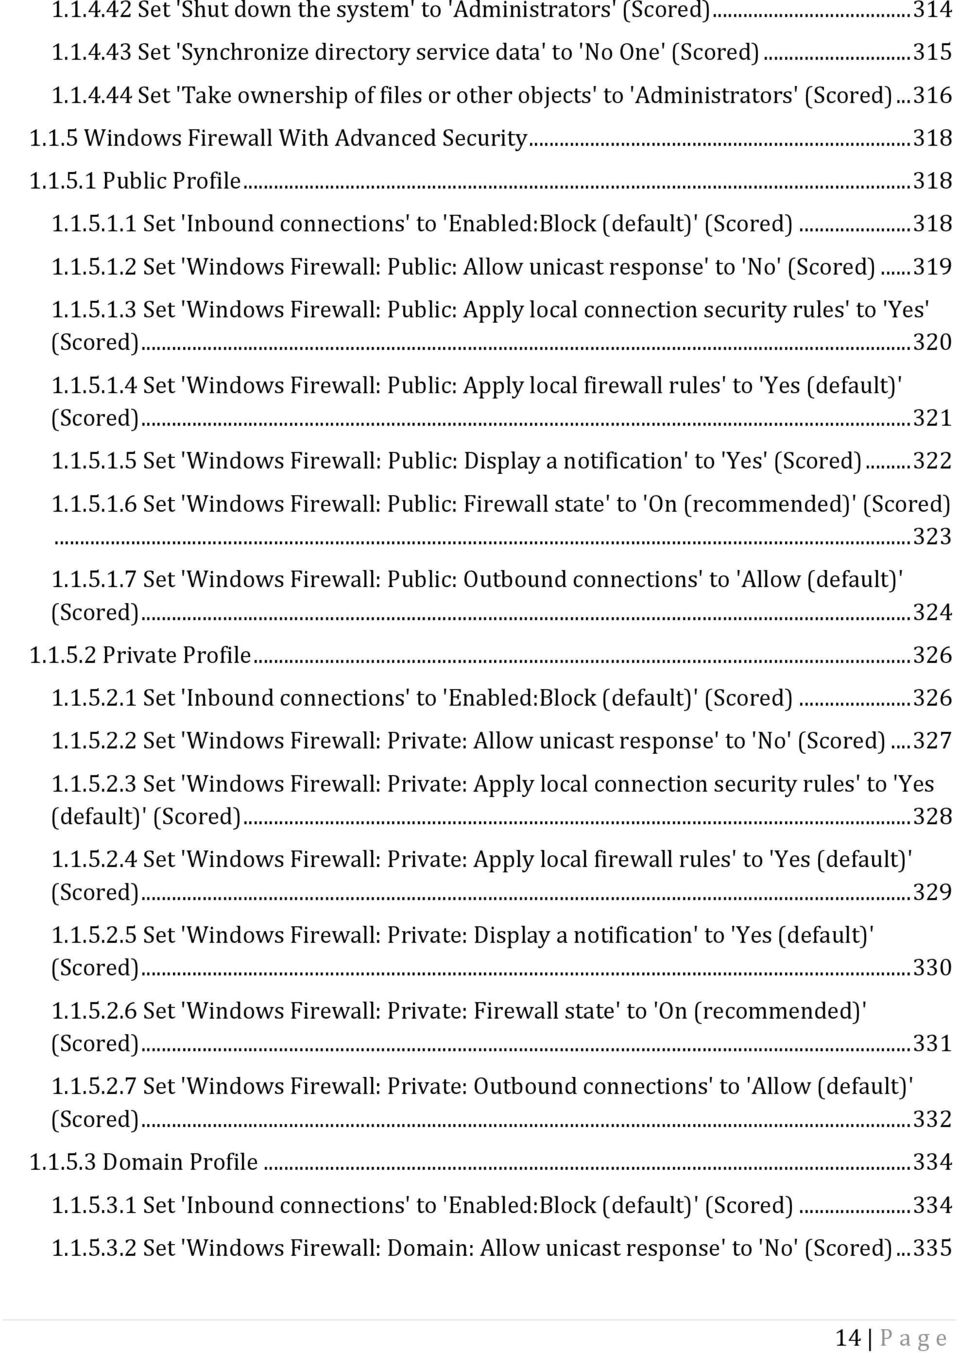 .. 319 1.1.5.1.3 Set 'Windows Firewall: Public: Apply local connection security rules' to 'Yes' (Scored)... 320 1.1.5.1.4 Set 'Windows Firewall: Public: Apply local firewall rules' to 'Yes (default)' (Scored).